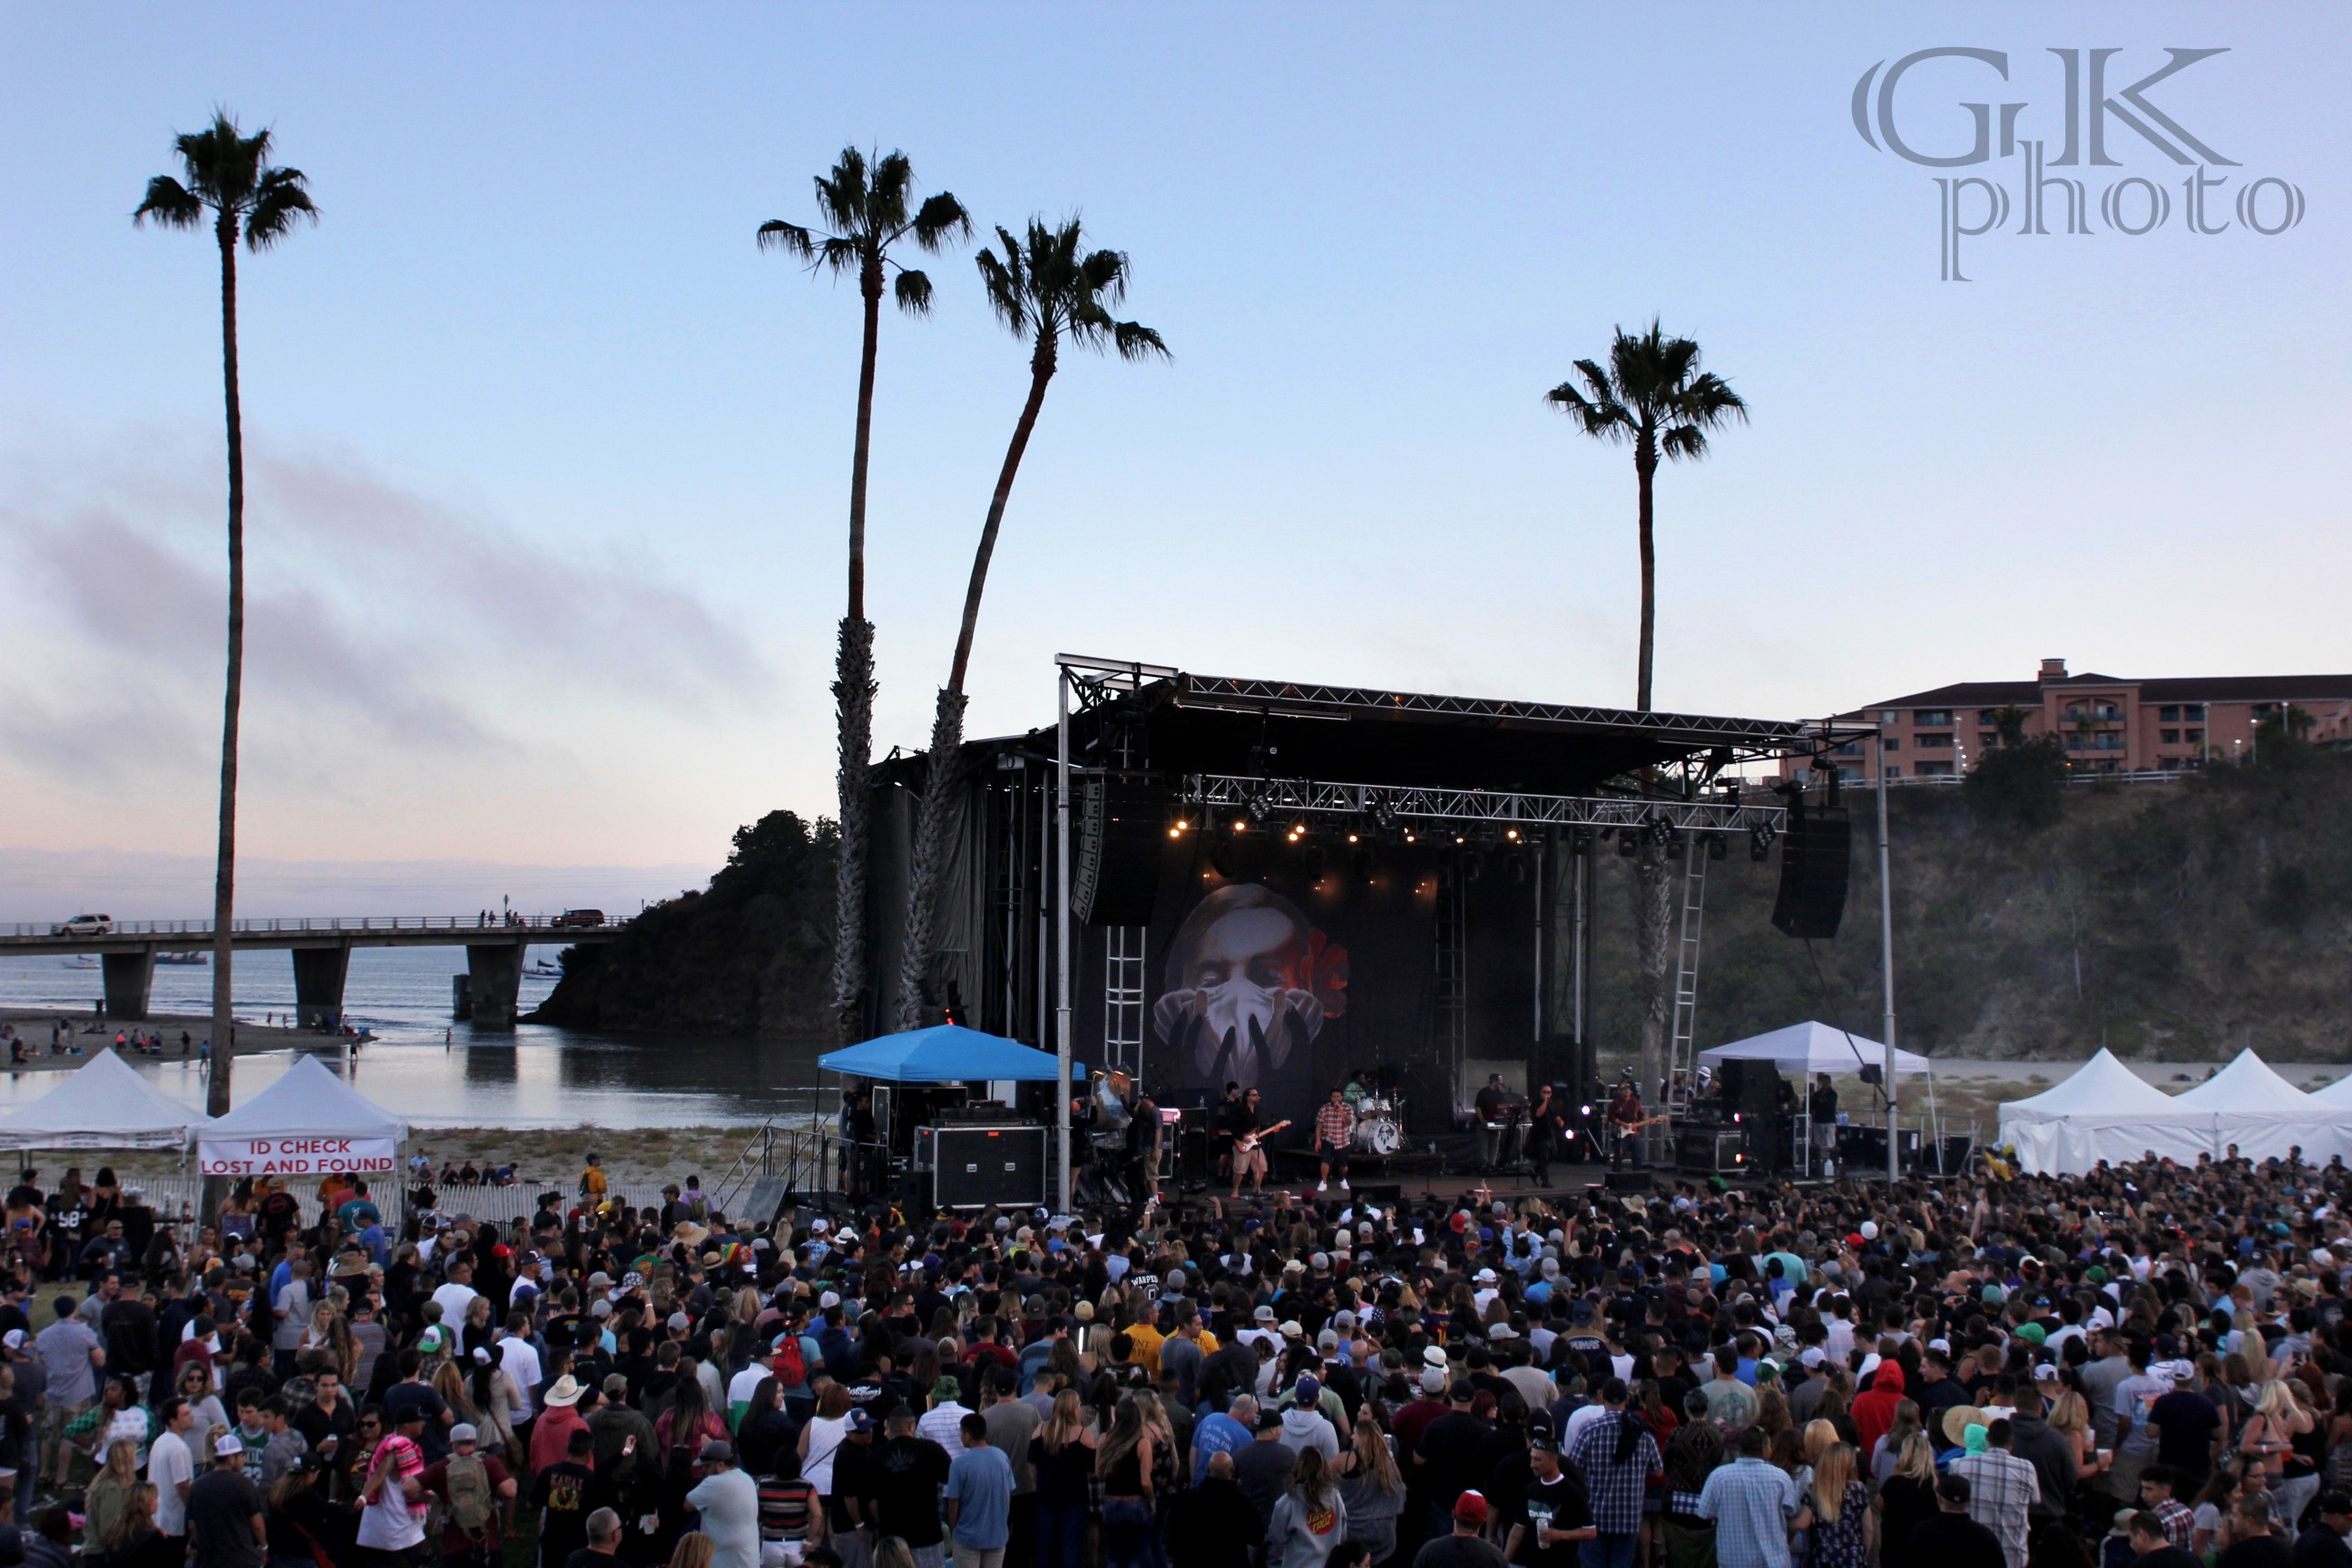 Avila Beach Is A Perfect Backdrop For The Venue, Concerts In The Cove.